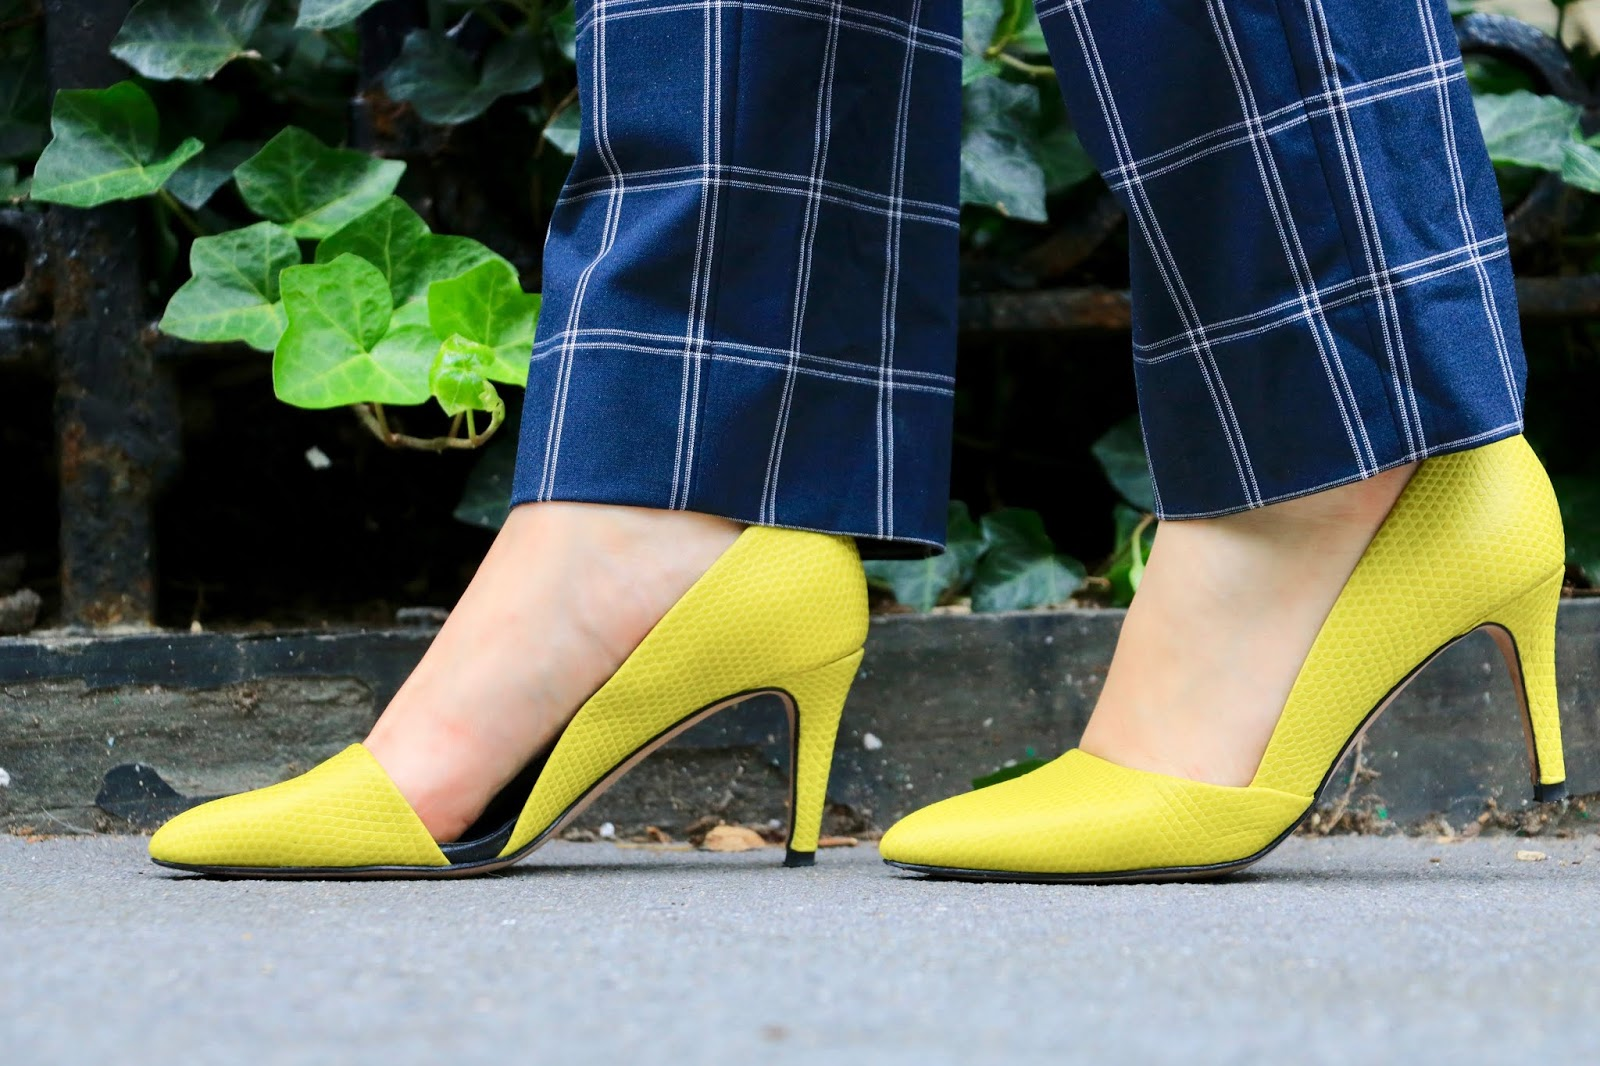 Nyc fashion blogger Kathleen Harper's yellow Rebecca Minkoff pumps